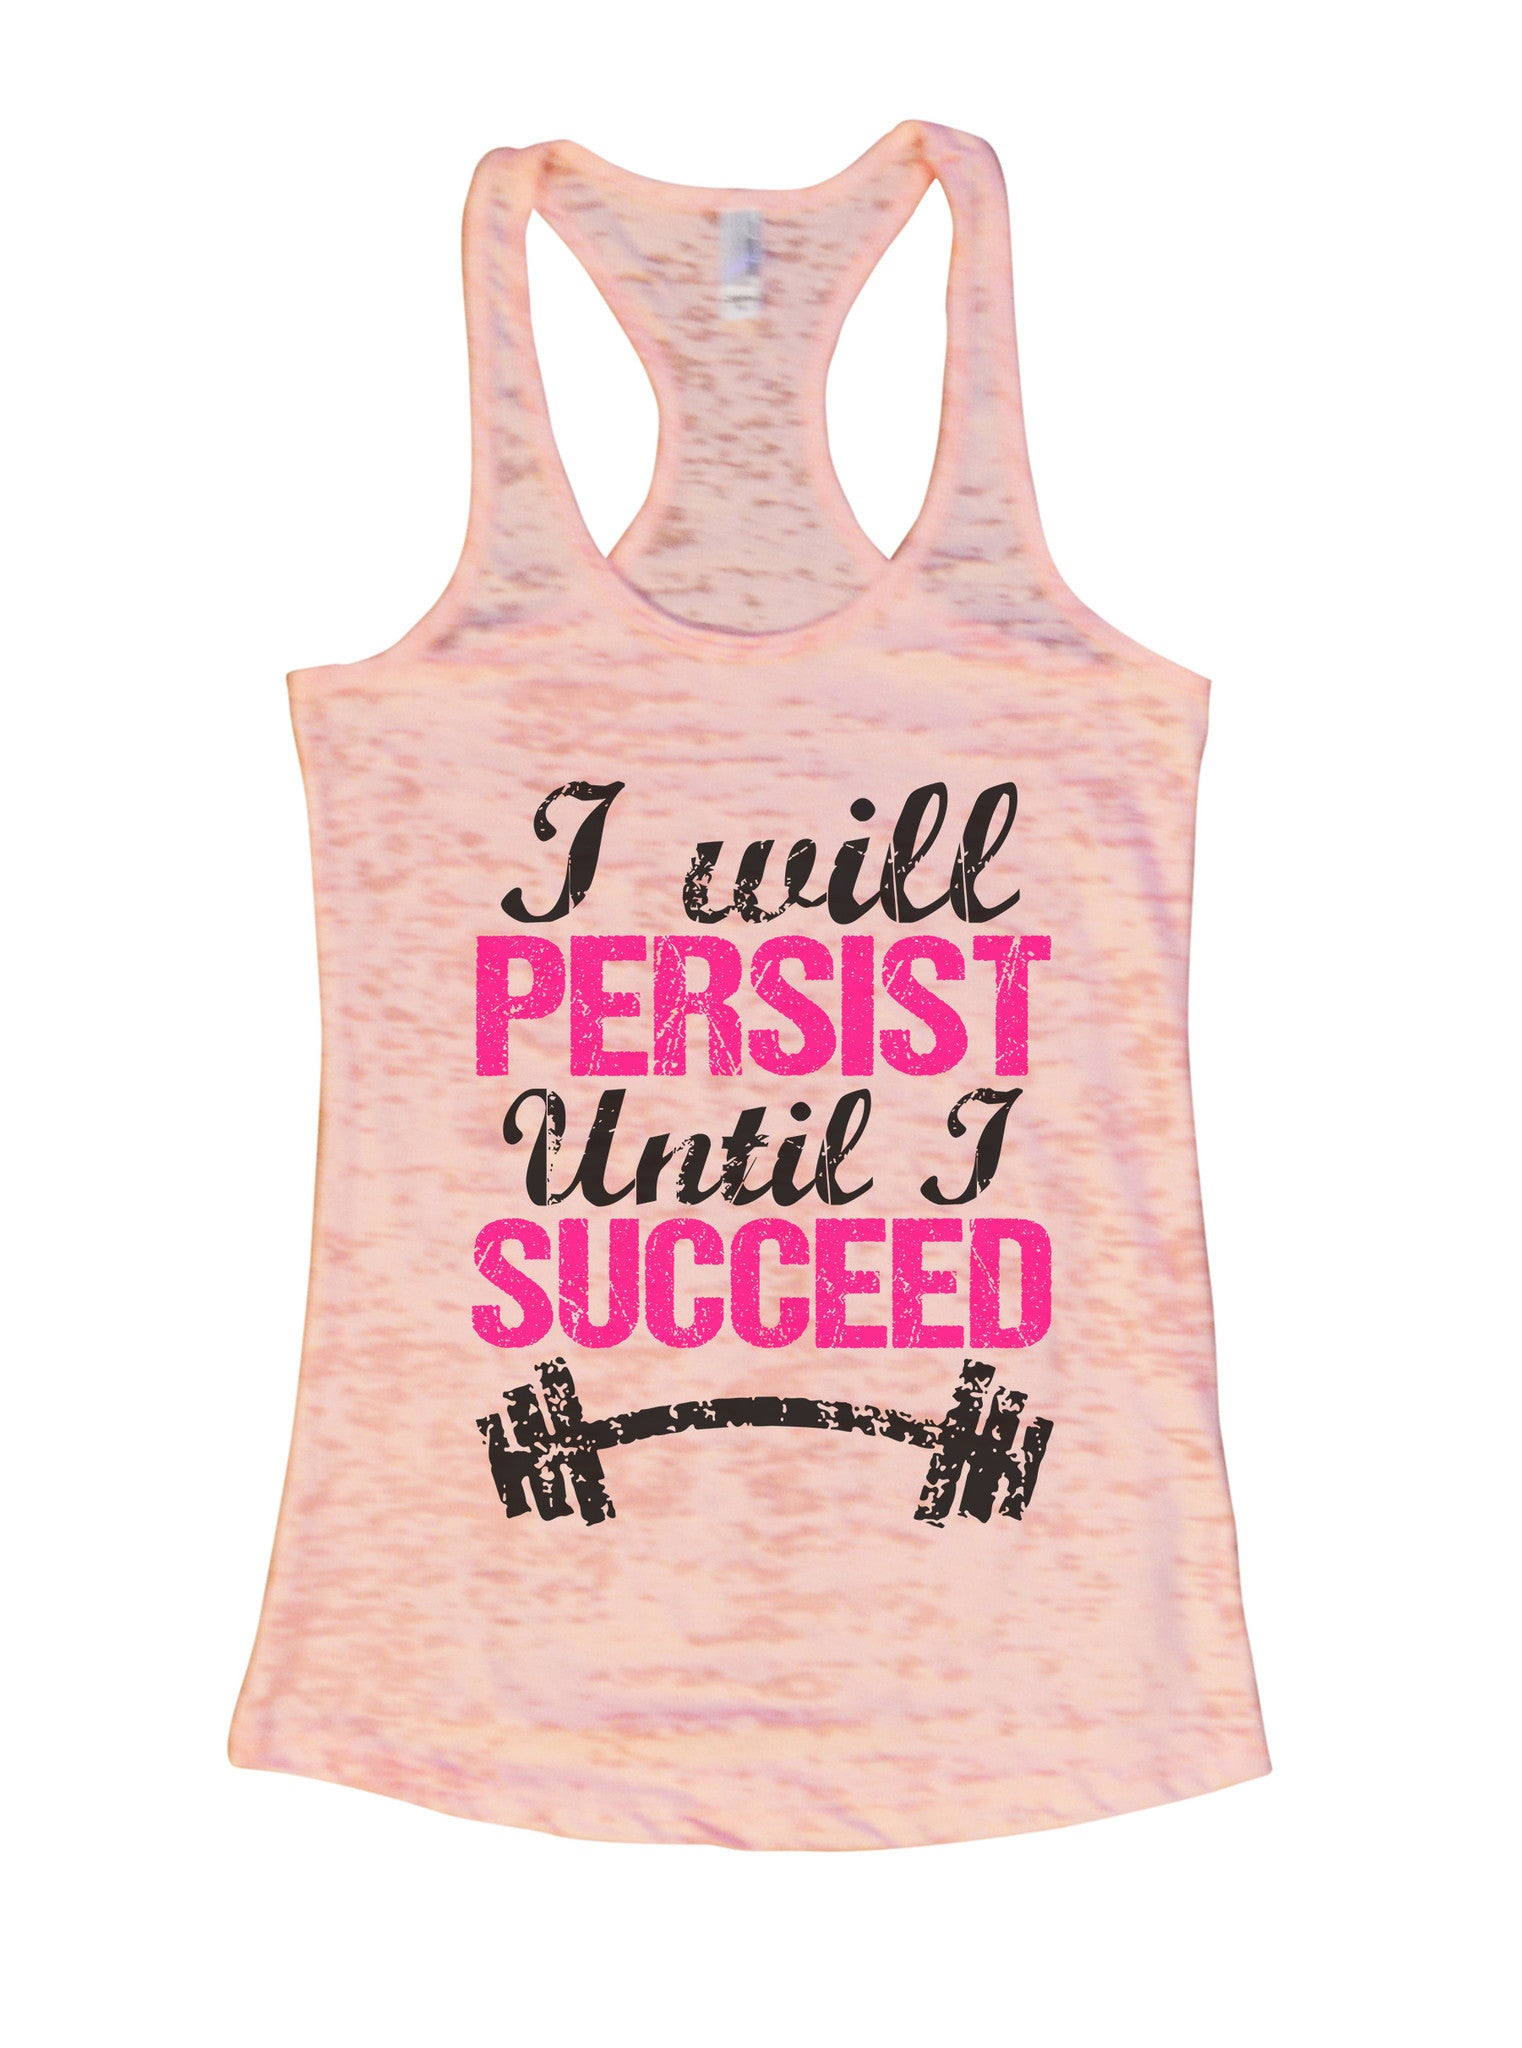 Womens Burnout Tank Top I Will Persist Until I Succeed Motivational Tank BurnoutTankTops.com - Funny Shirts Tank Tops Burnouts and Triblends  - 3